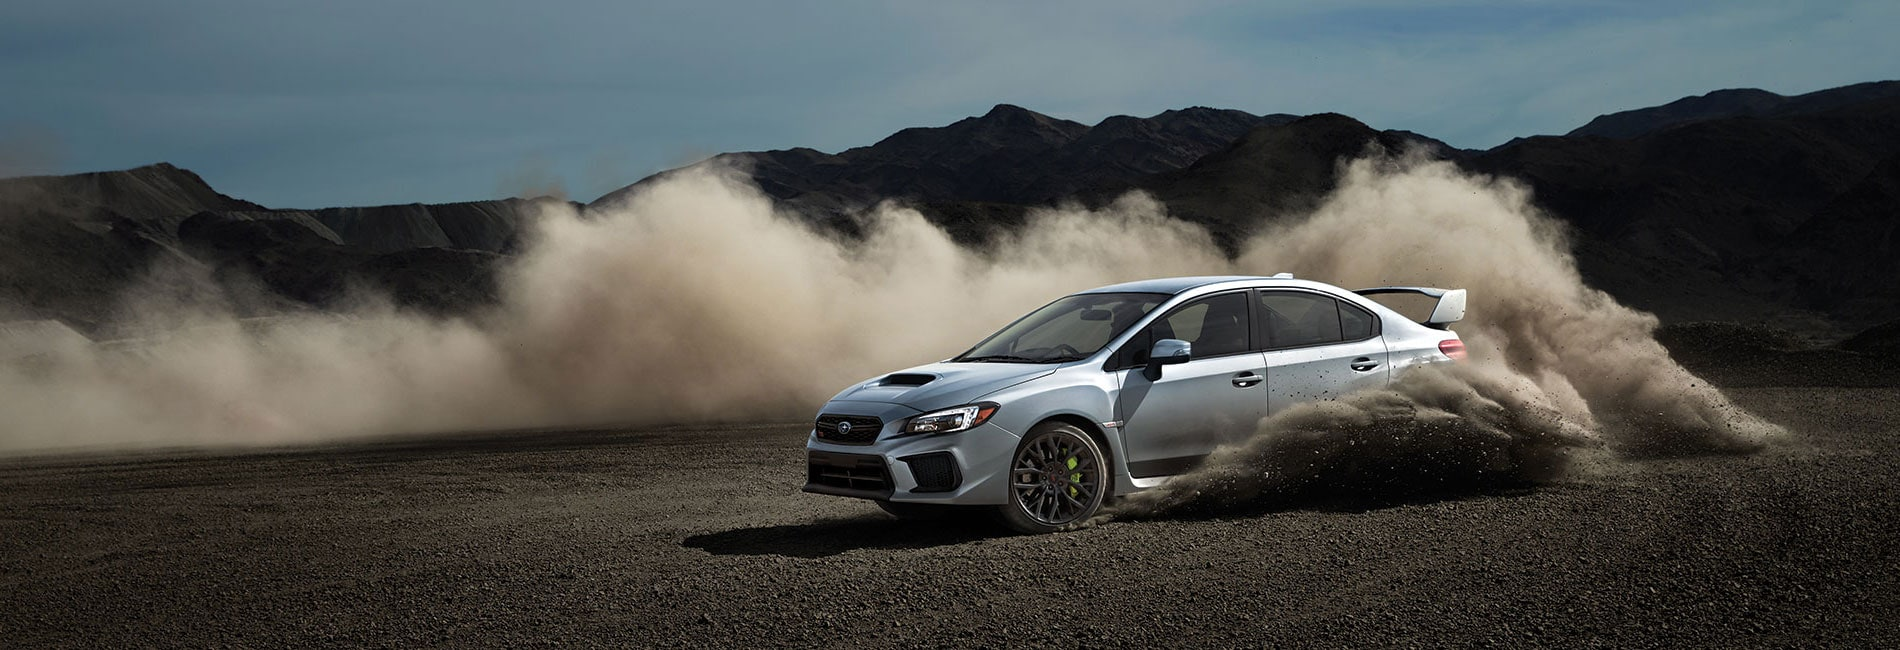 2018 Subaru WRX Exterior Features